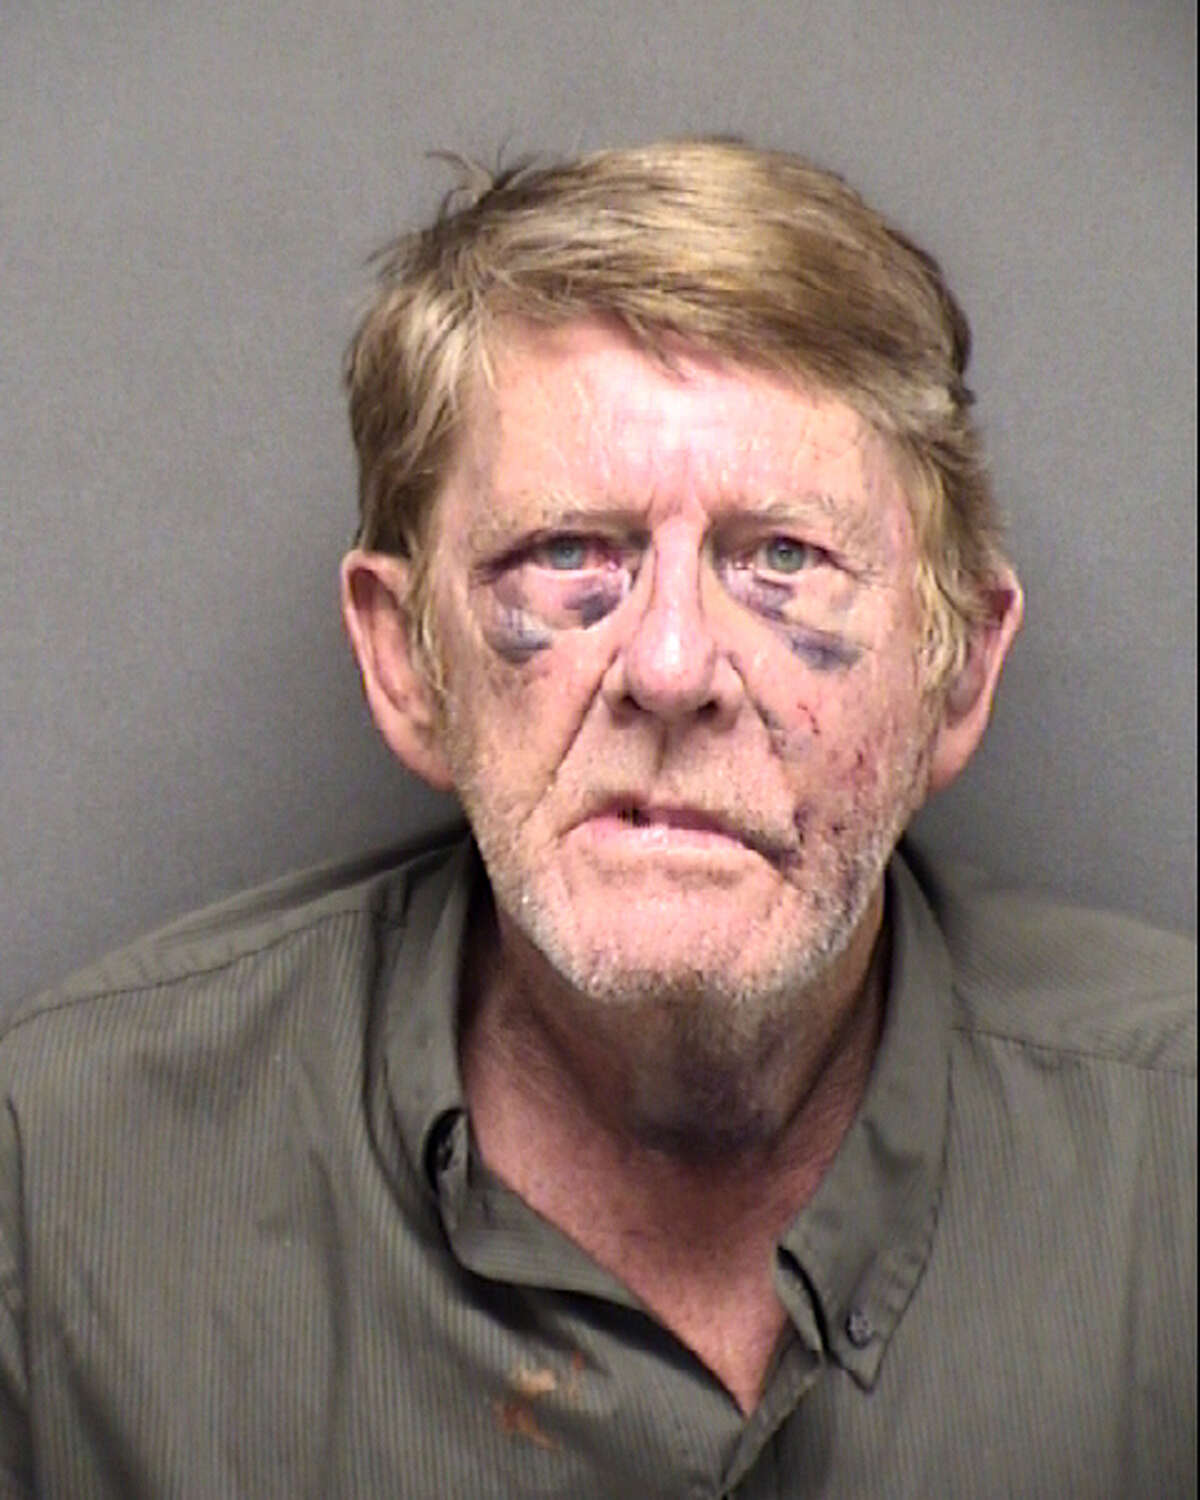 Gerald Allen Young, 66, was arrested Wednesday evening and is facing a murder charge despite claiming he was using self-defense when he allegedly stabbed his 55-year-old roommate on the Northwest Side on Tuesday.